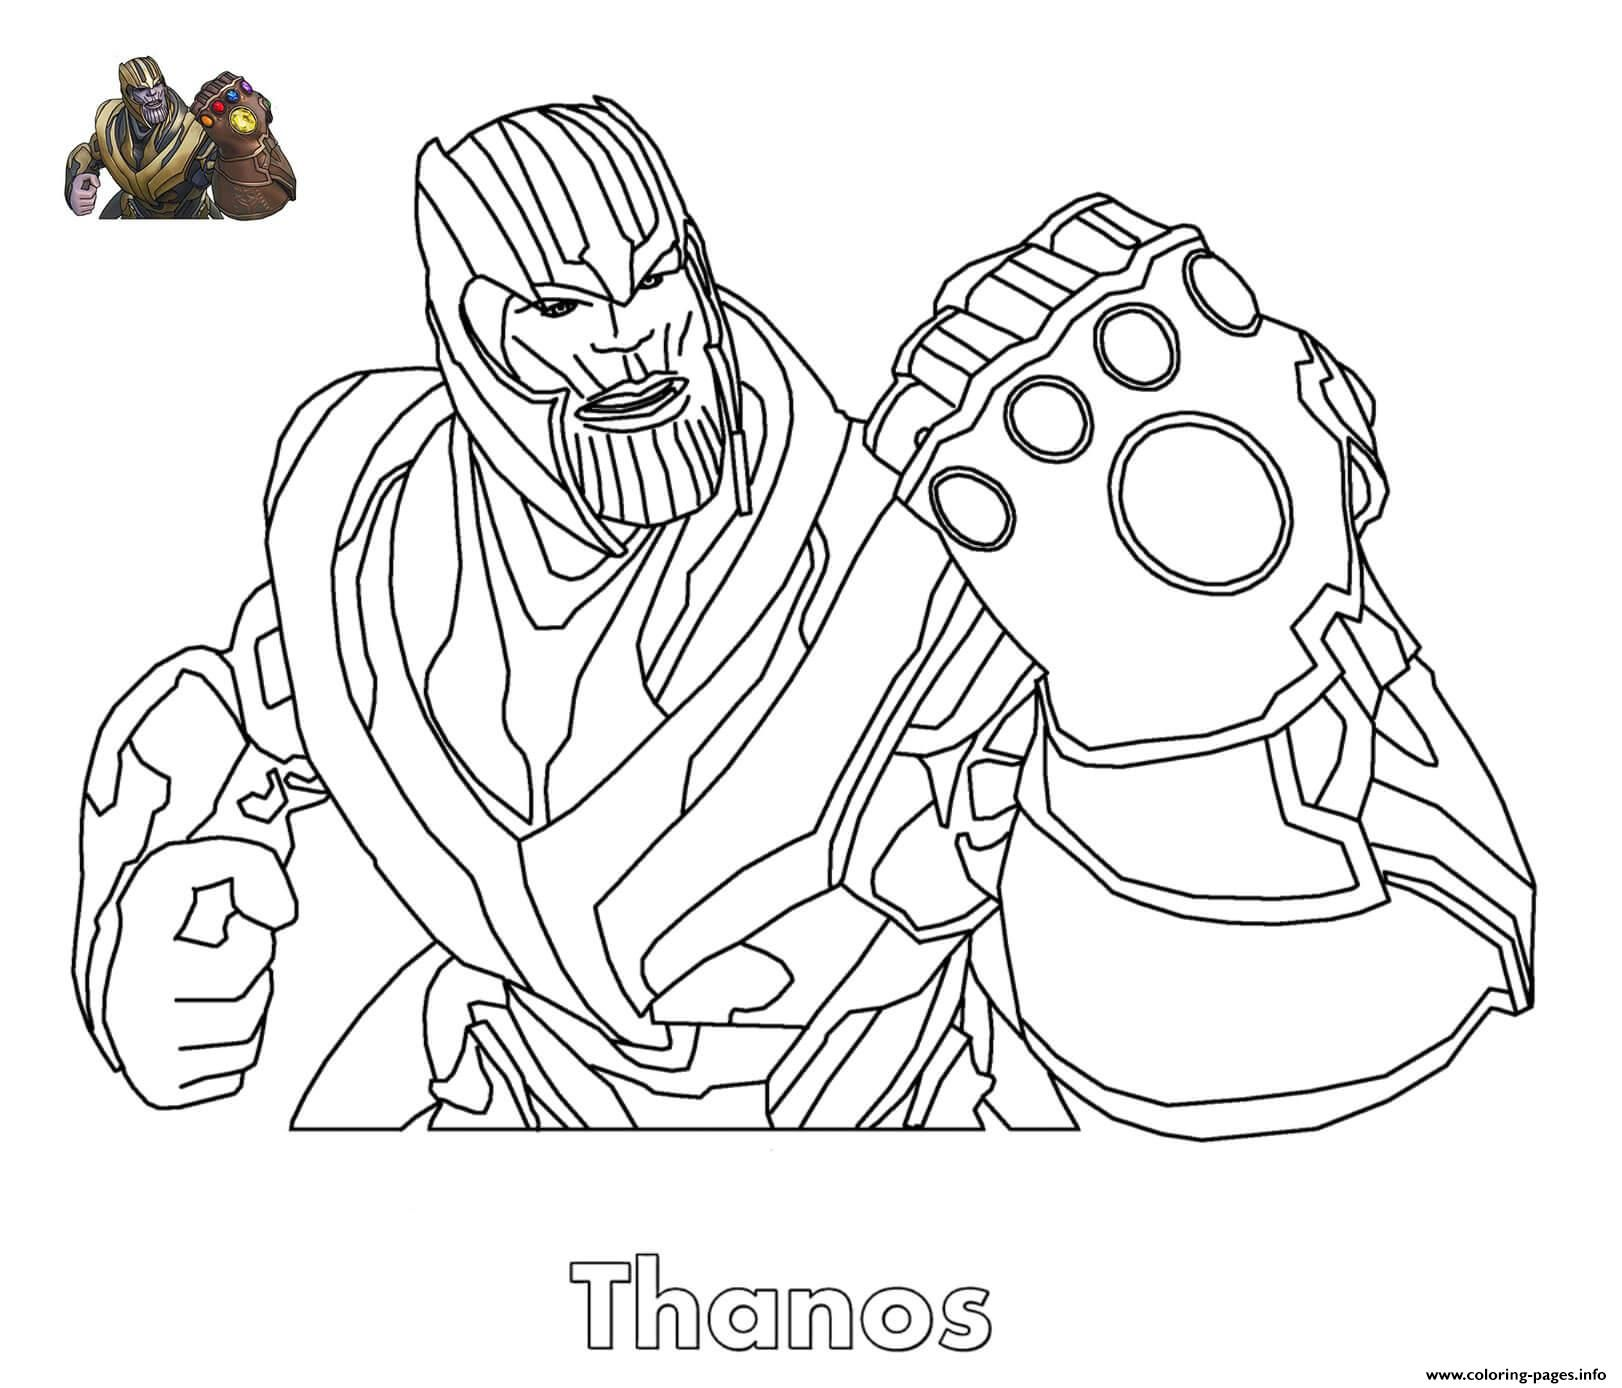 Print Thanos Fortnite Coloring Pages Coloring Pages To Print